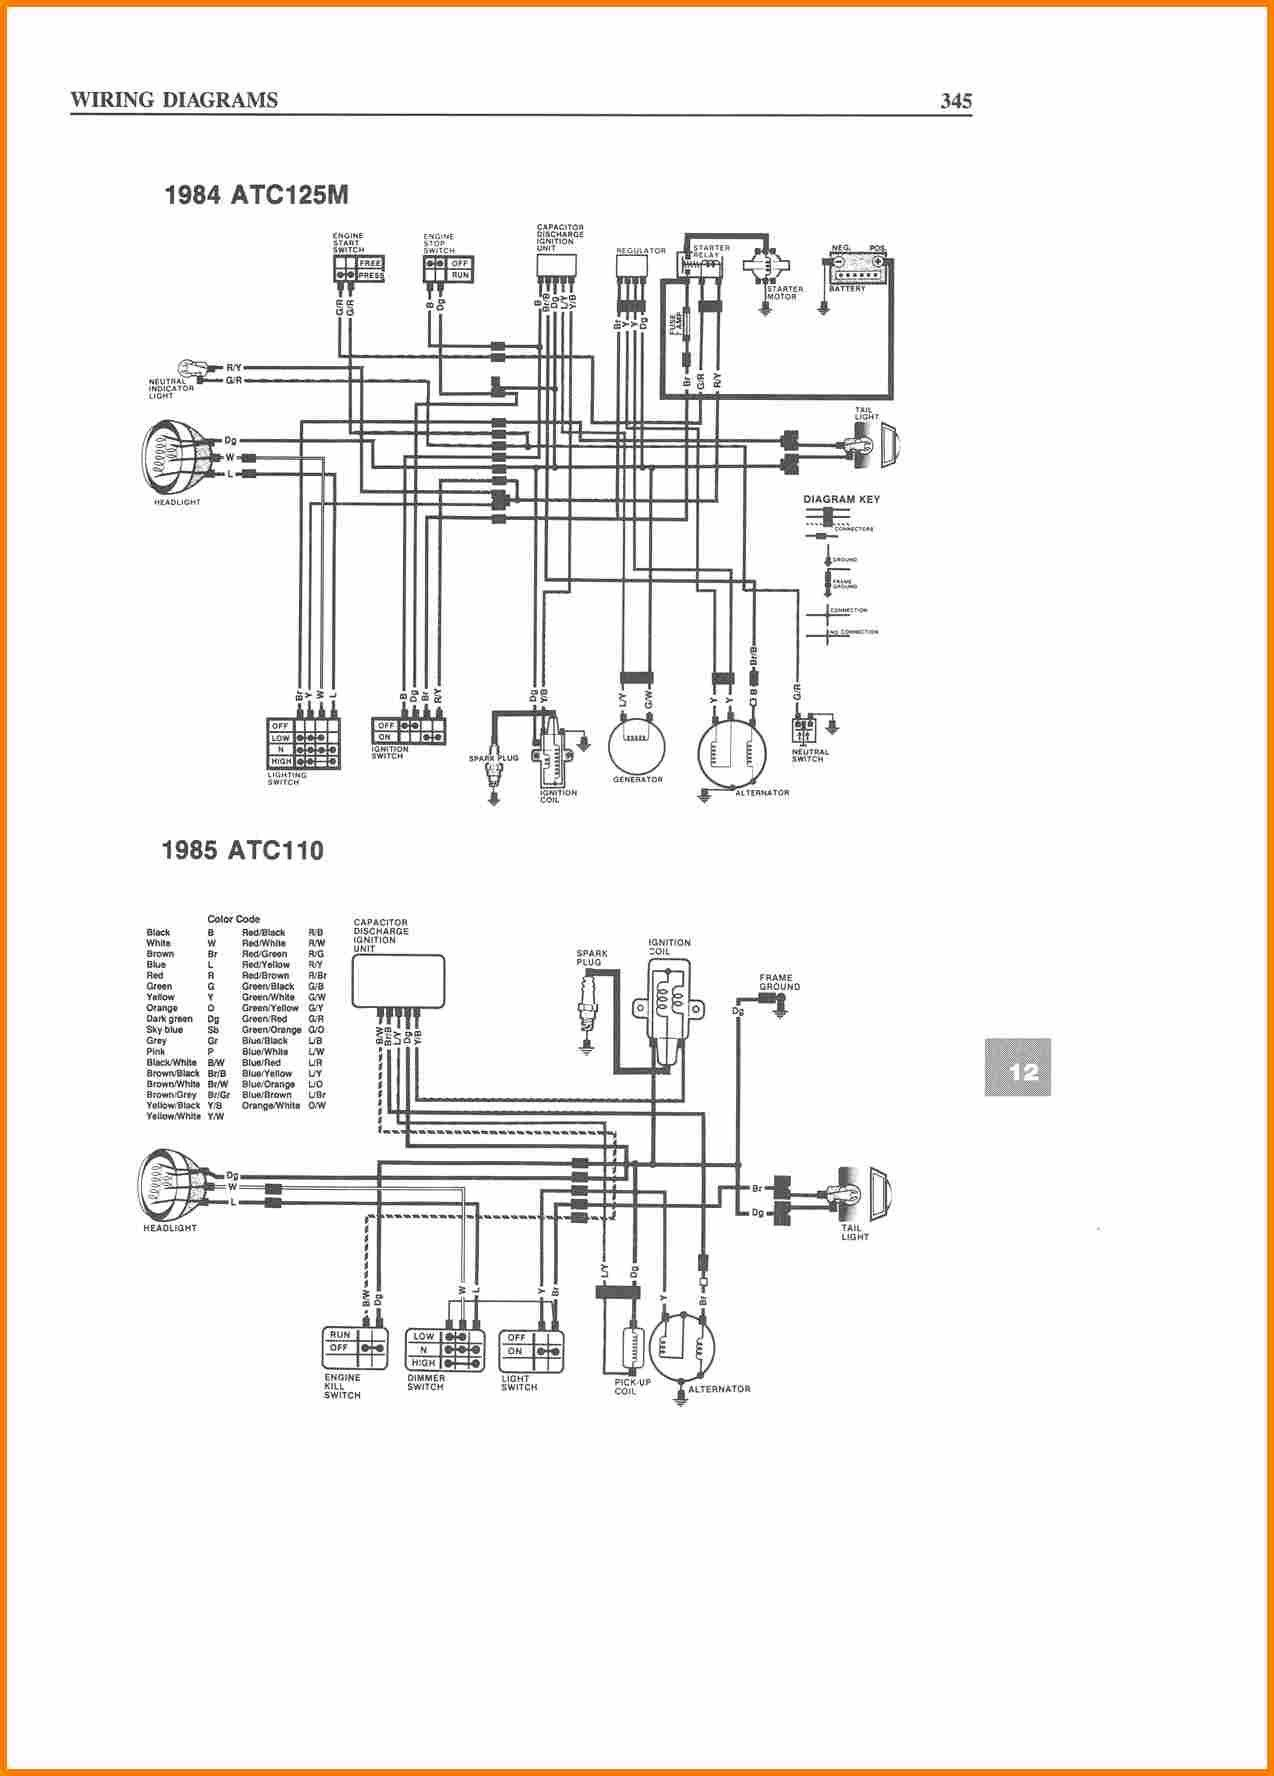 chinese scooter tao wiring diagram wiring diagram recent china 49cc scooter cdi wiring diagram [ 1274 x 1776 Pixel ]